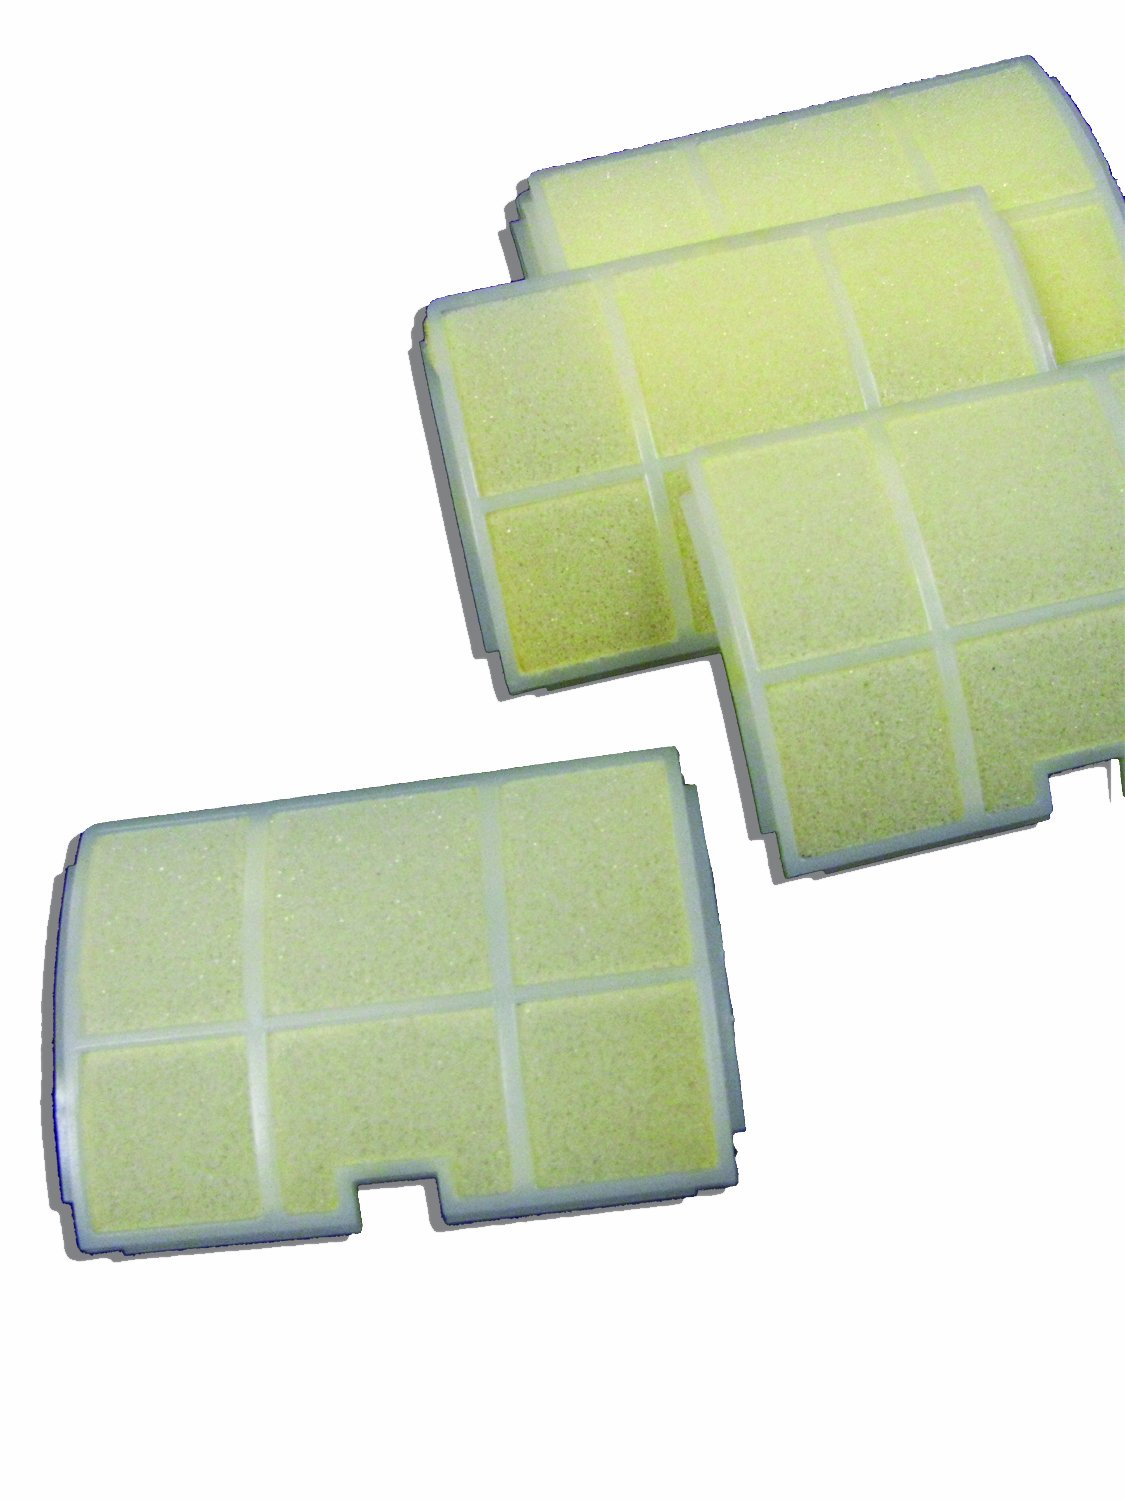 Green Klean GK-5143 Replacement Exhaust Filter (Pack of 50) by Green Klean®